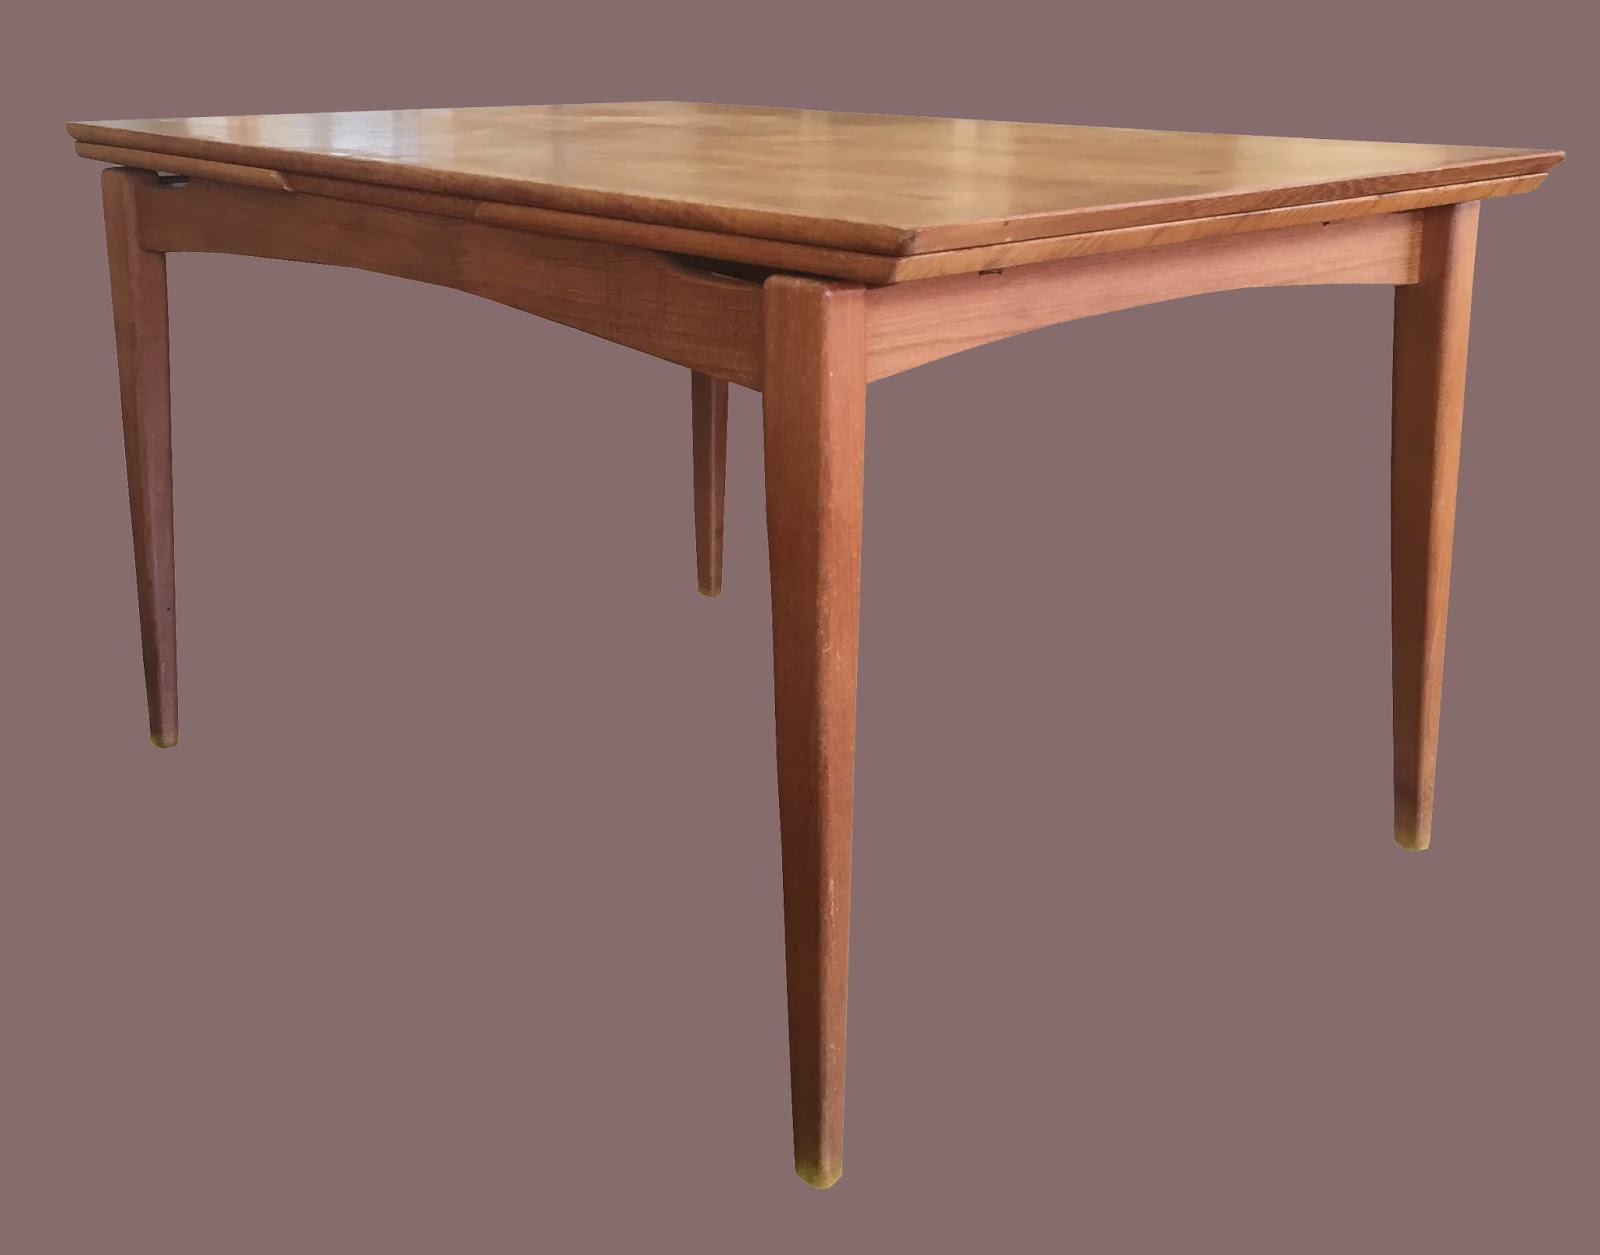 Uhuru Furniture Collectibles Vintage Teak Dining Table